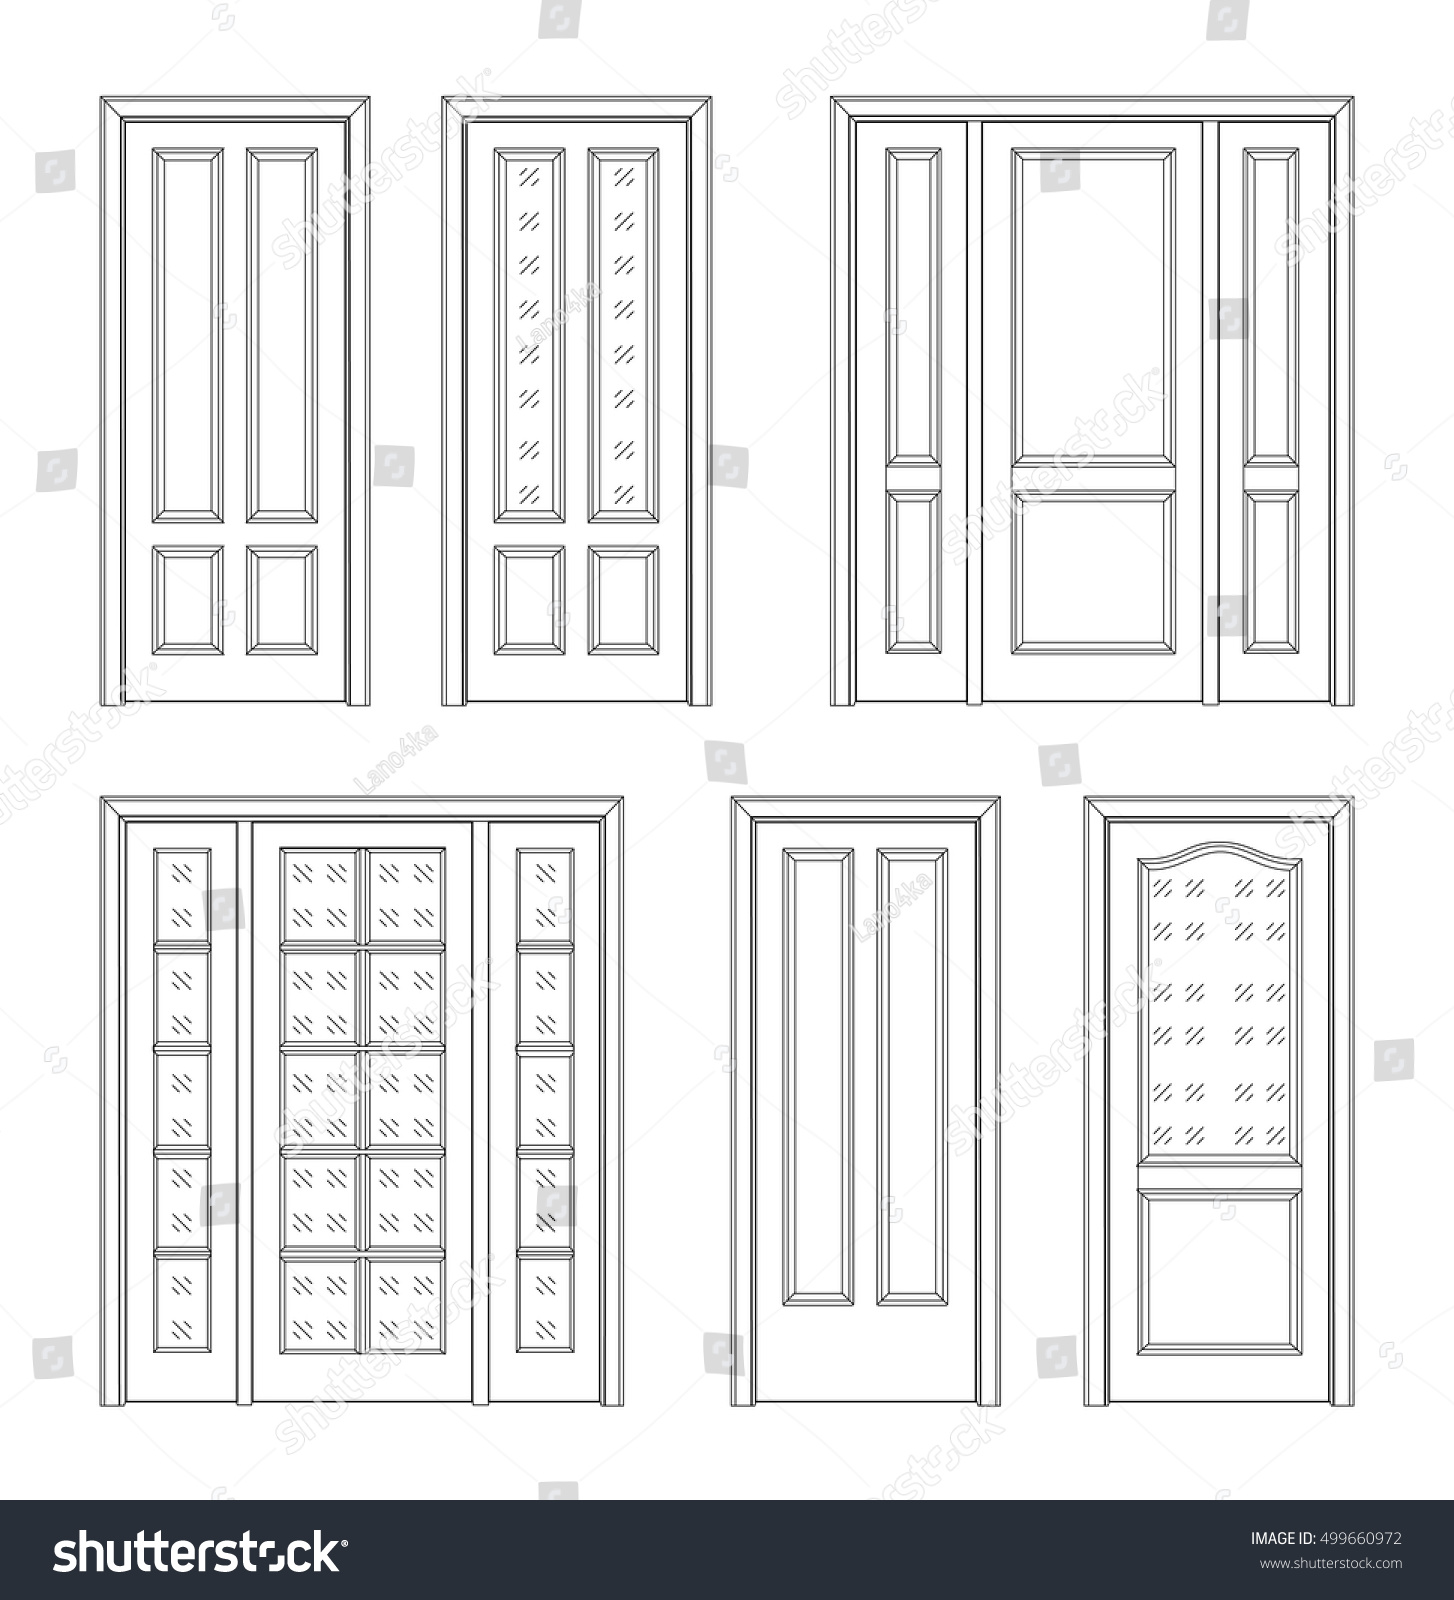 Simple door drawing - Collection Interior Doors Technical Drawing Classic Interior Doors Simple Sketch For Your Design